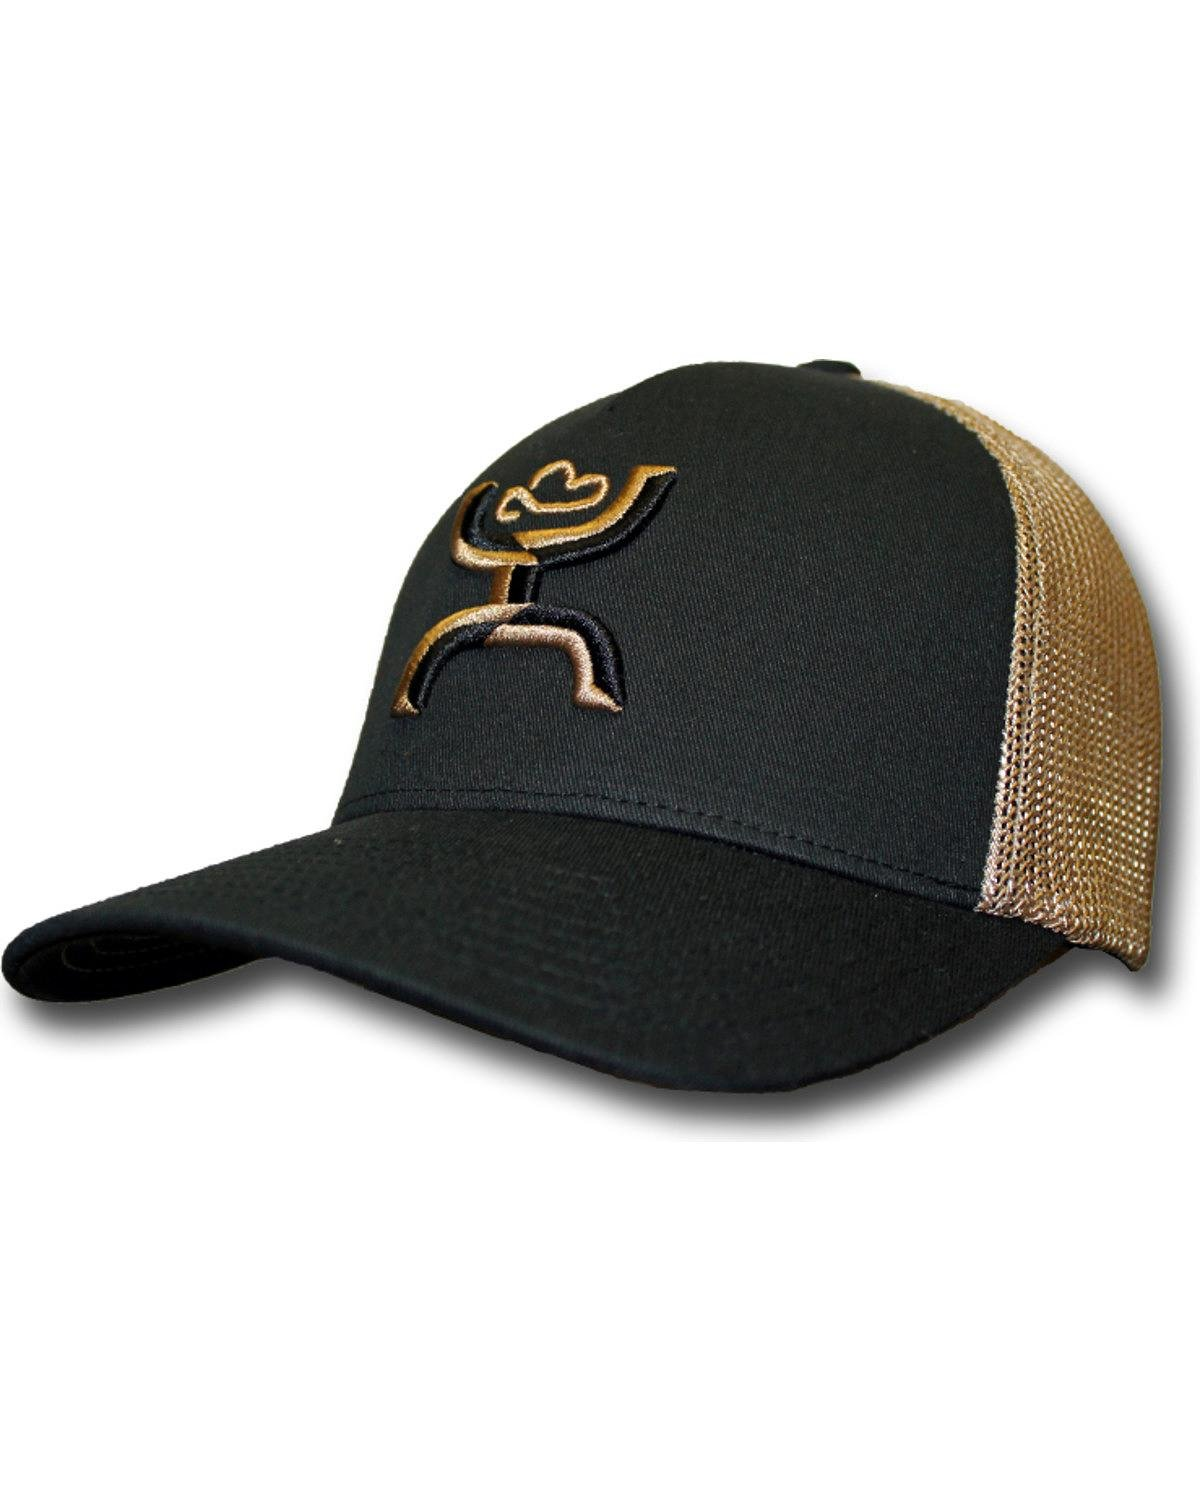 new style cf1cd fbe3f ... promo code for hooey mens coach flexfit embroidered baseball cap  1662bkkh f891f a83b0